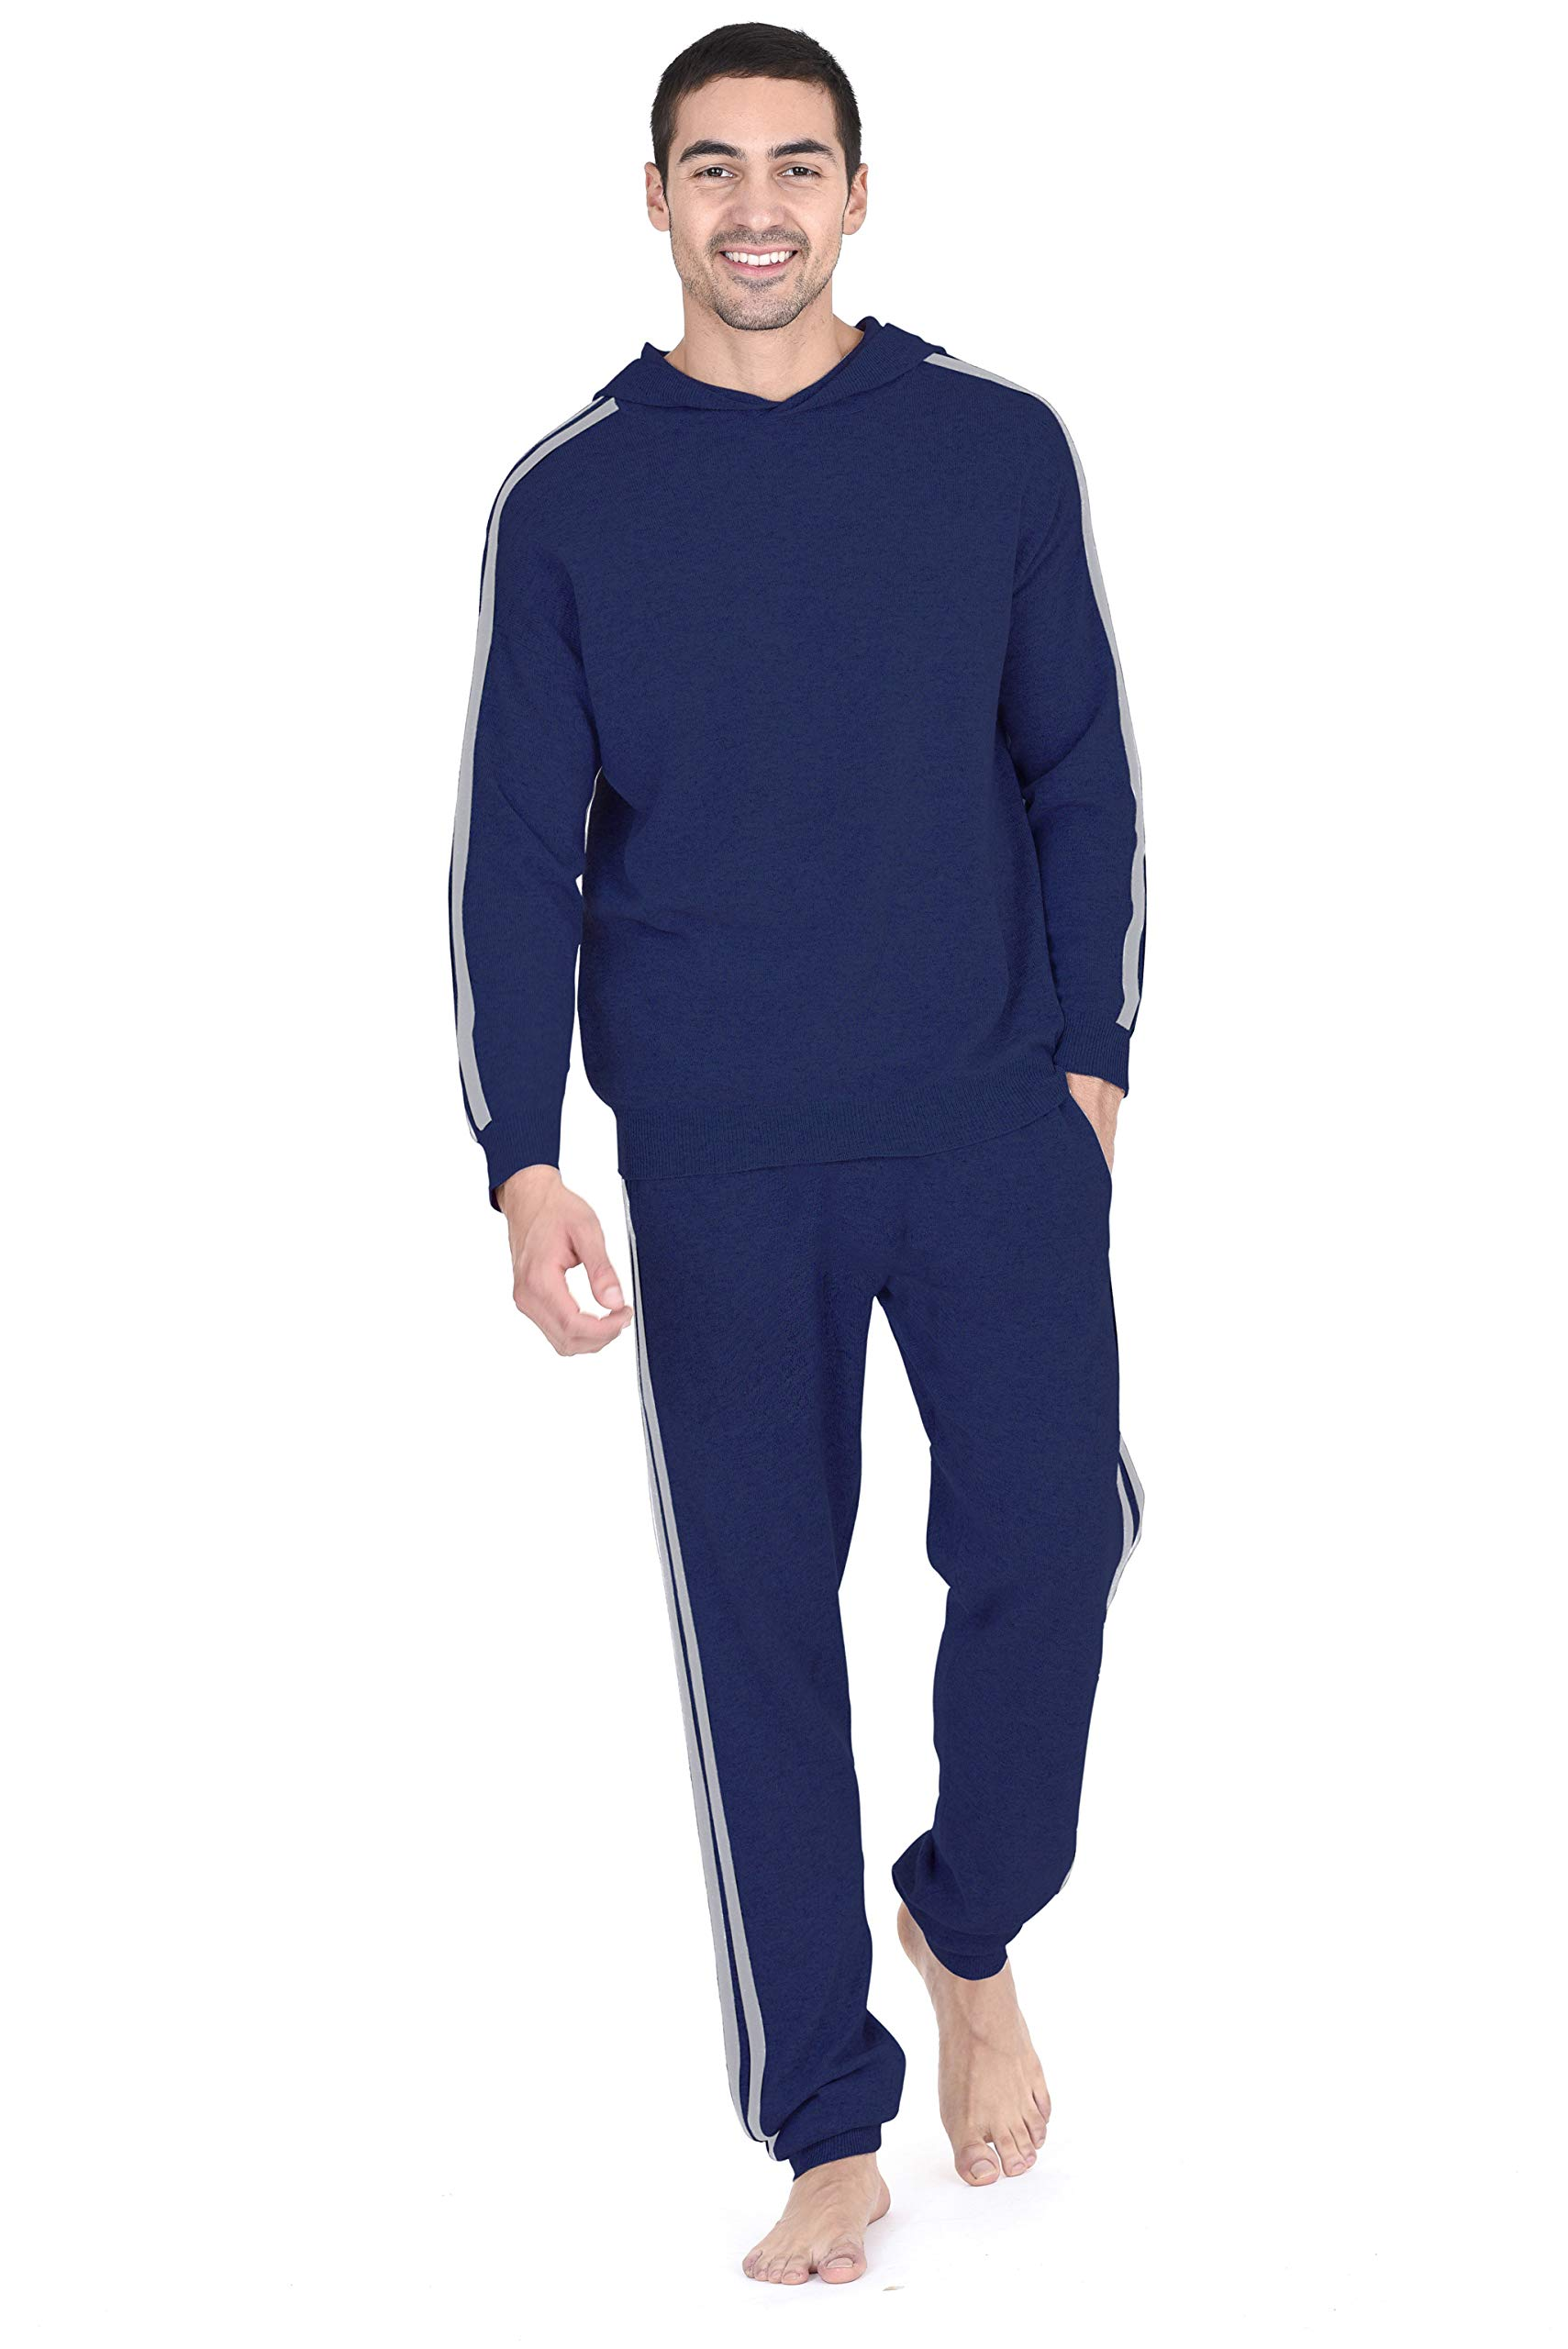 State Fusio Men's Wool Cashmere Loungewear Sweatshirt Hoodie/Pants ◆Priced and Sold Separately, Add Both to Cart for Set◆